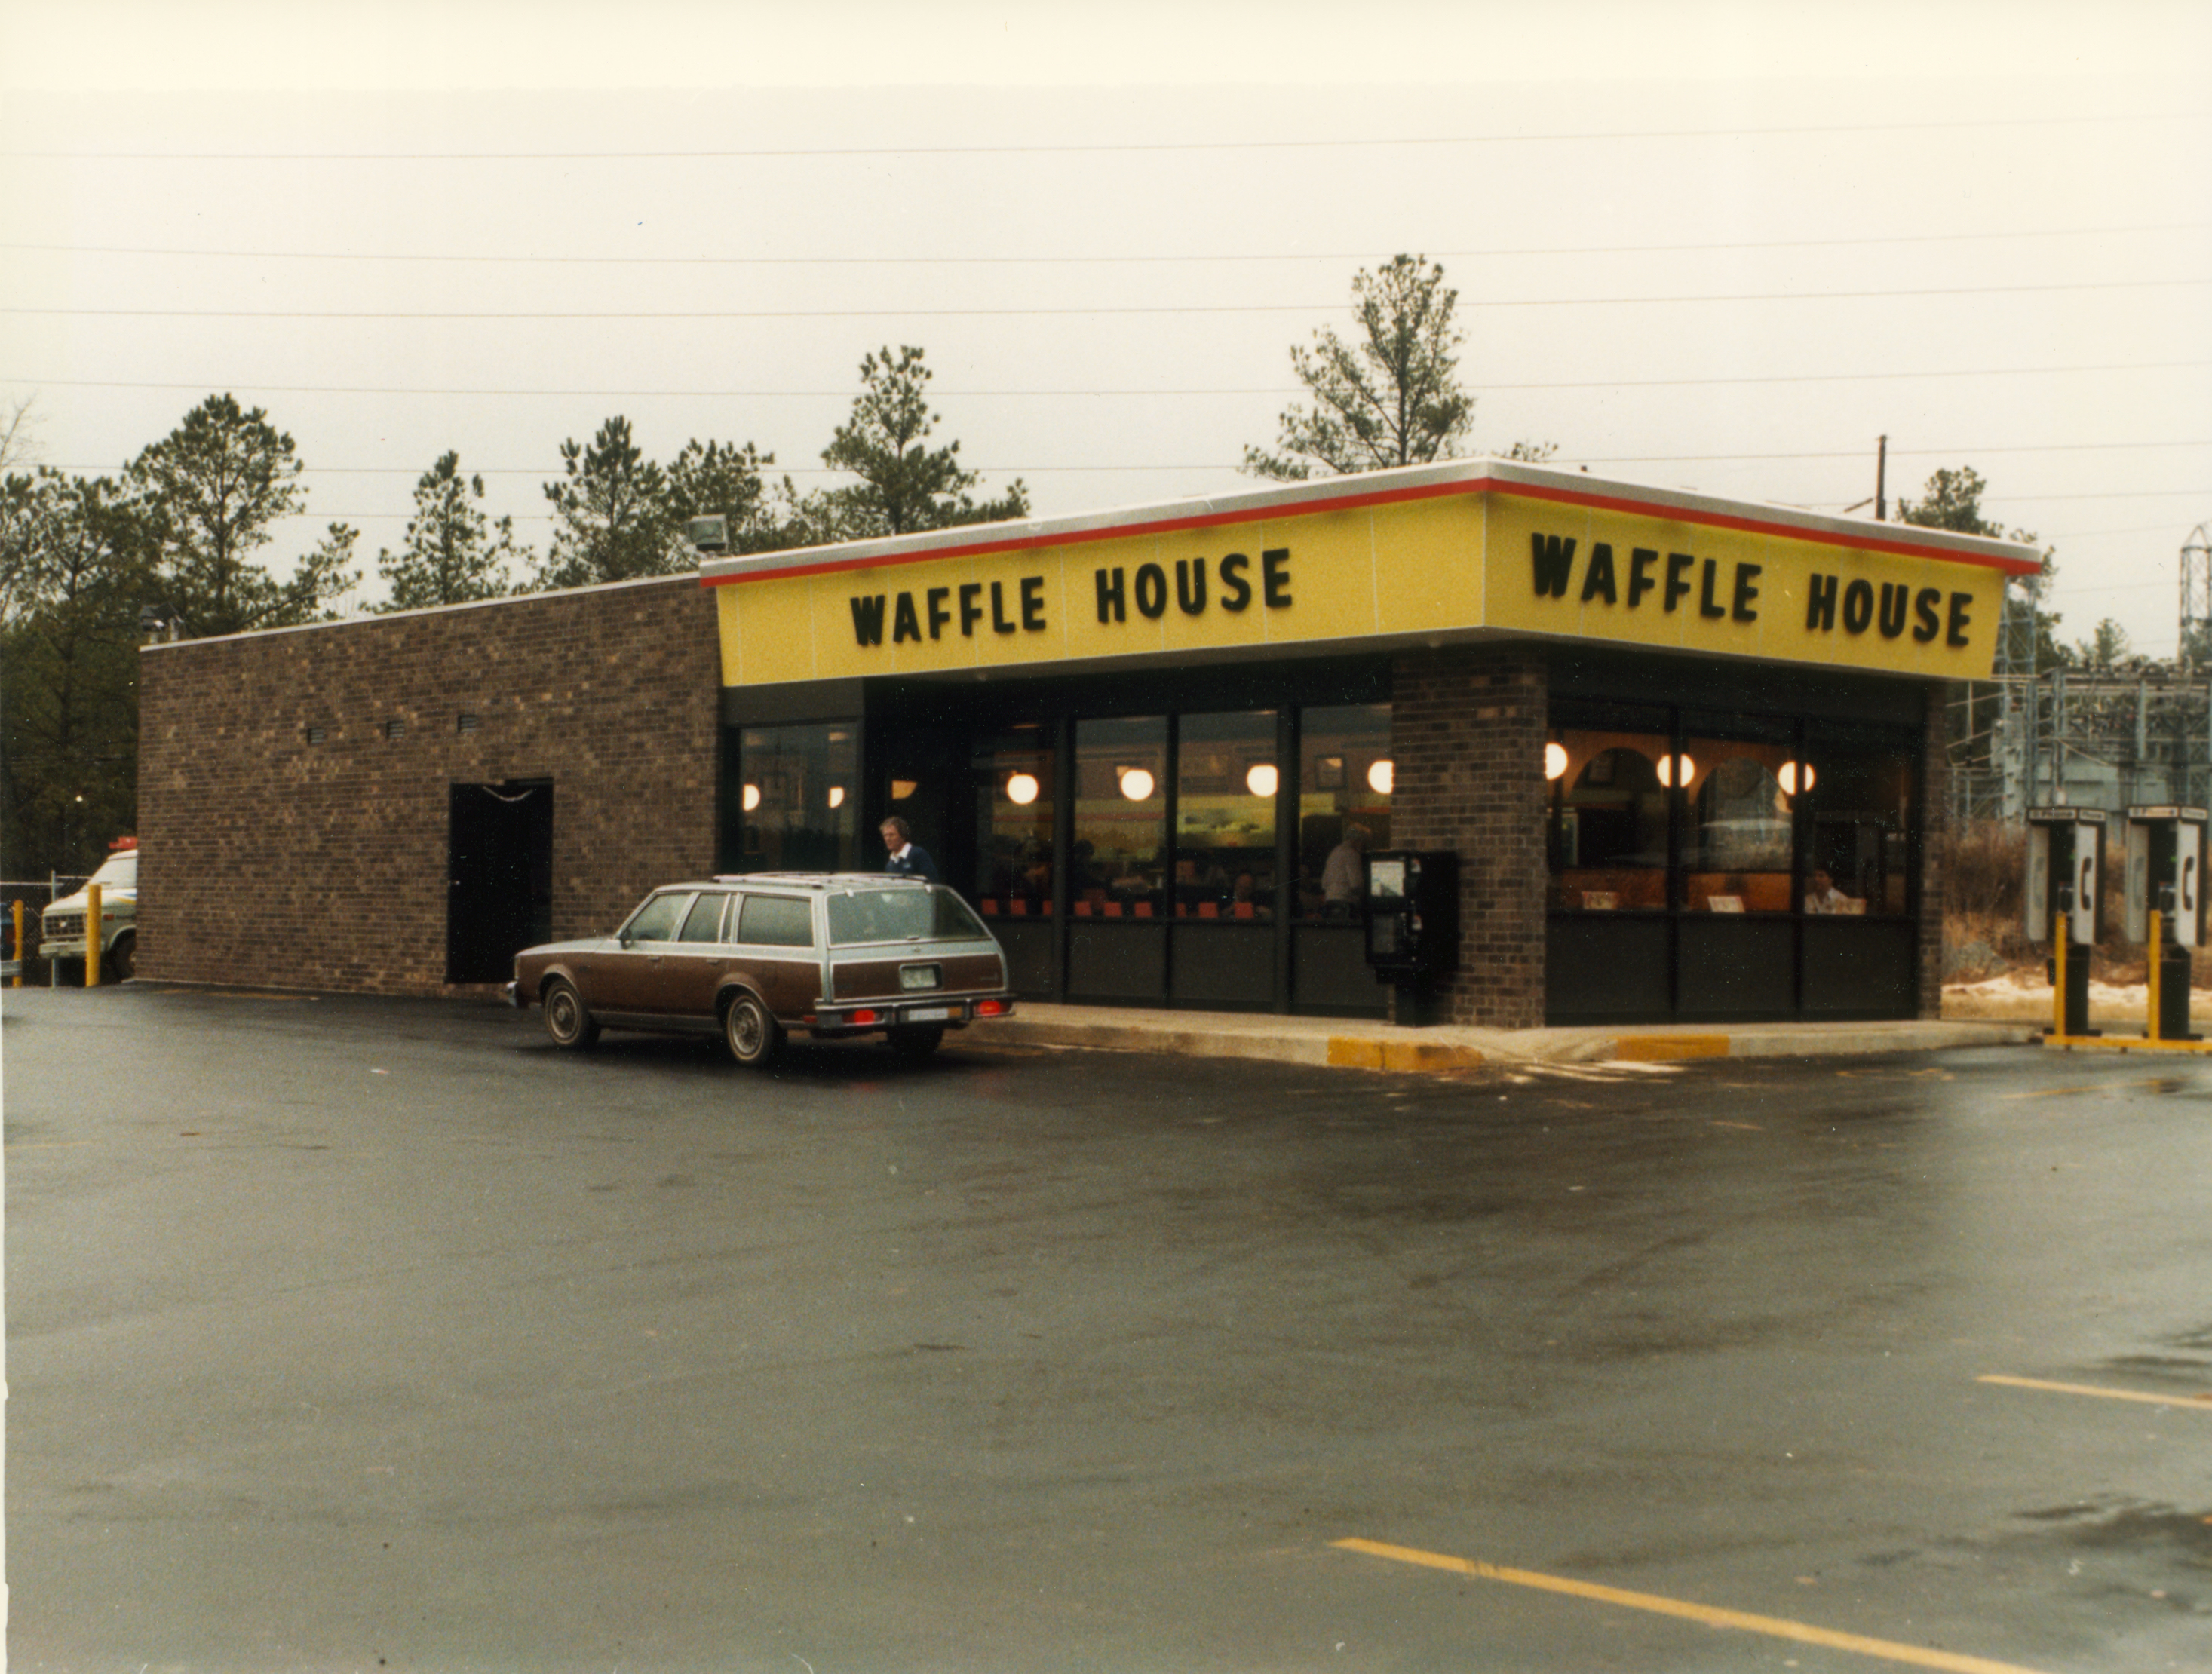 Exterior of Waffle House restaurant